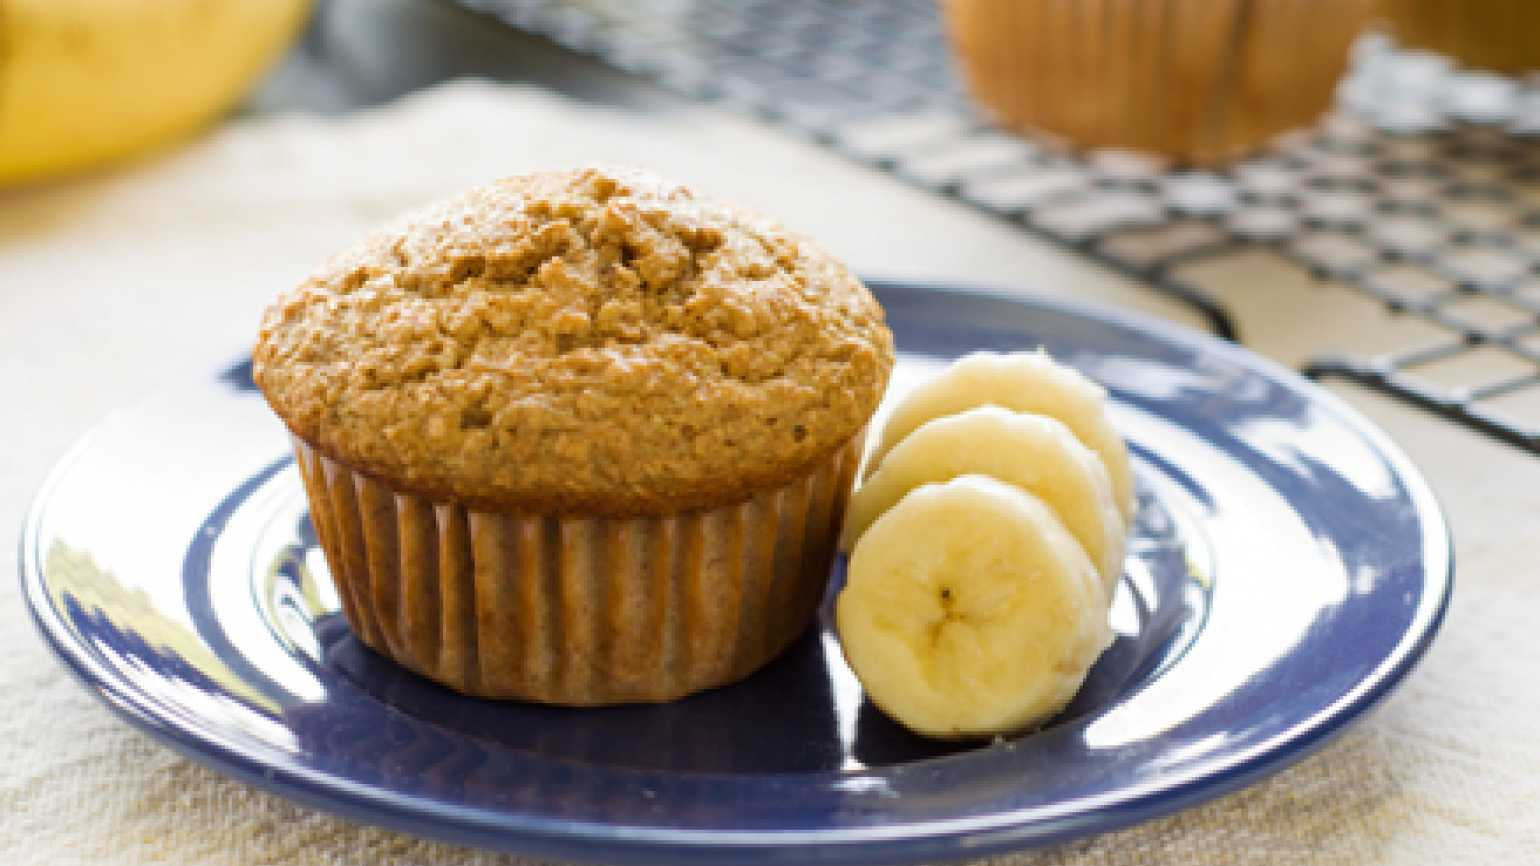 Banana muffin with banana slices beside it